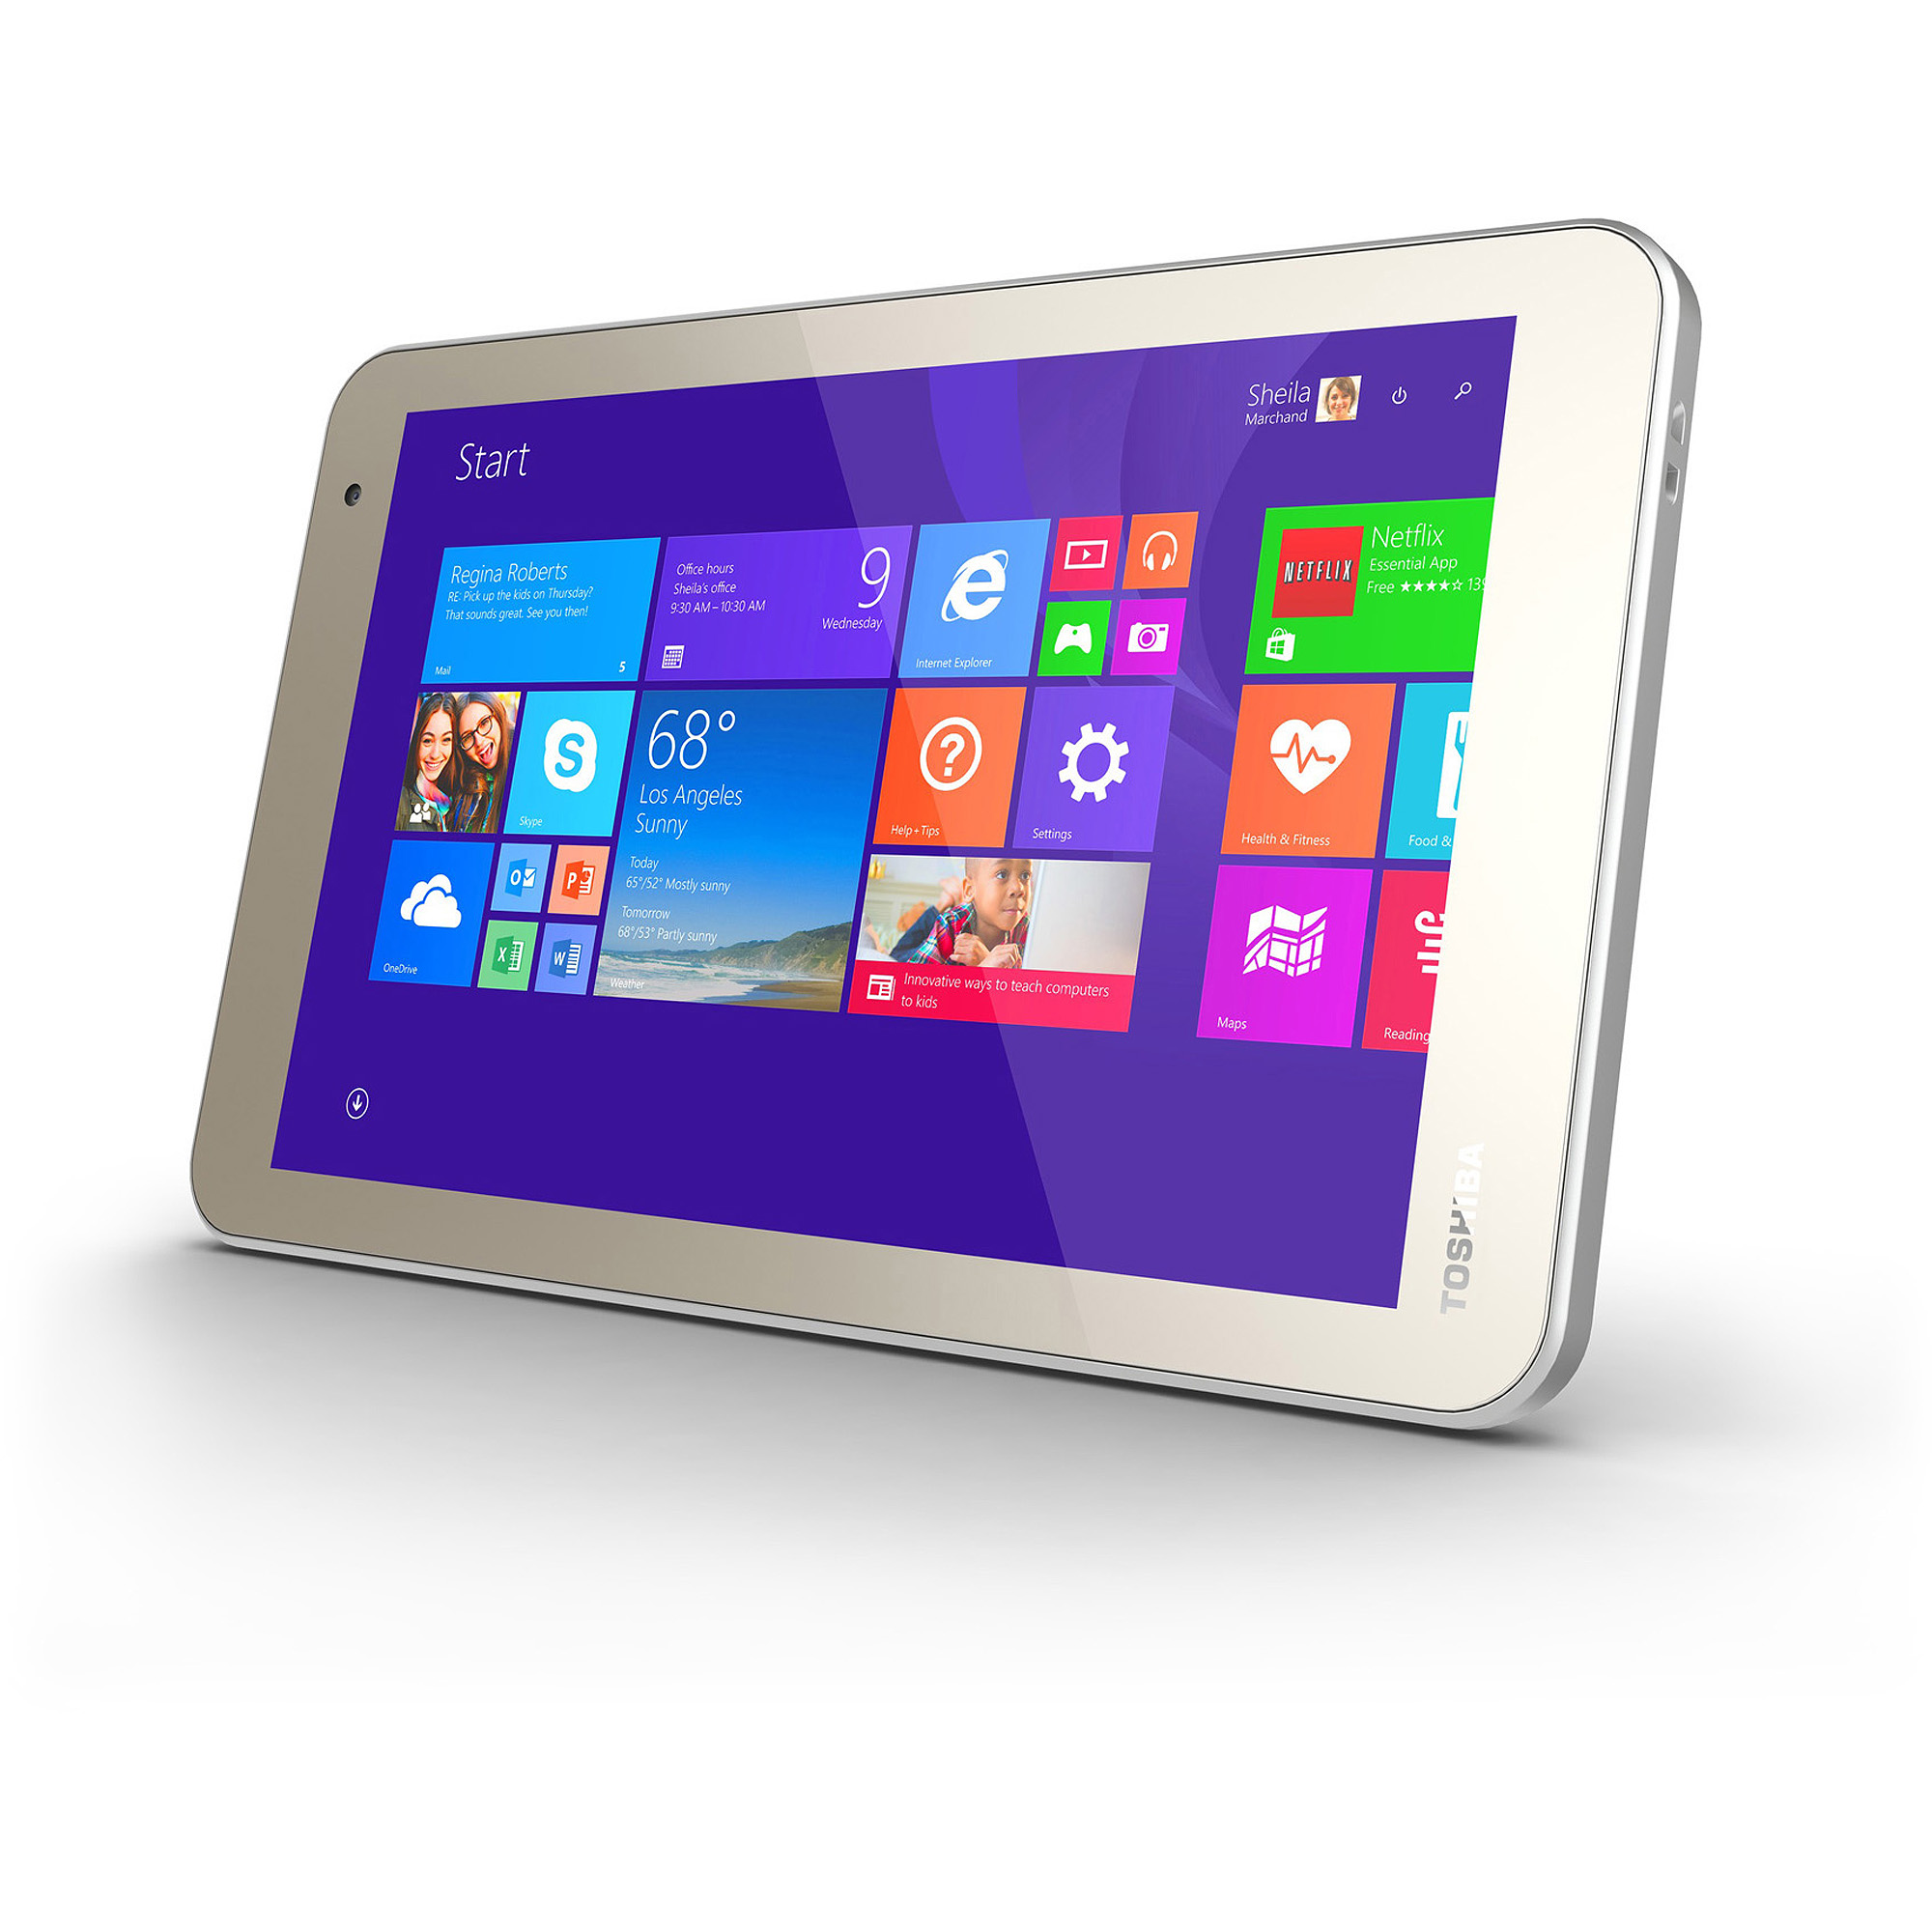 "Toshiba Encore 2 8"" Tablet 32GB Intel Atom Z3735F Quad-Core Processor Windows 8.1"